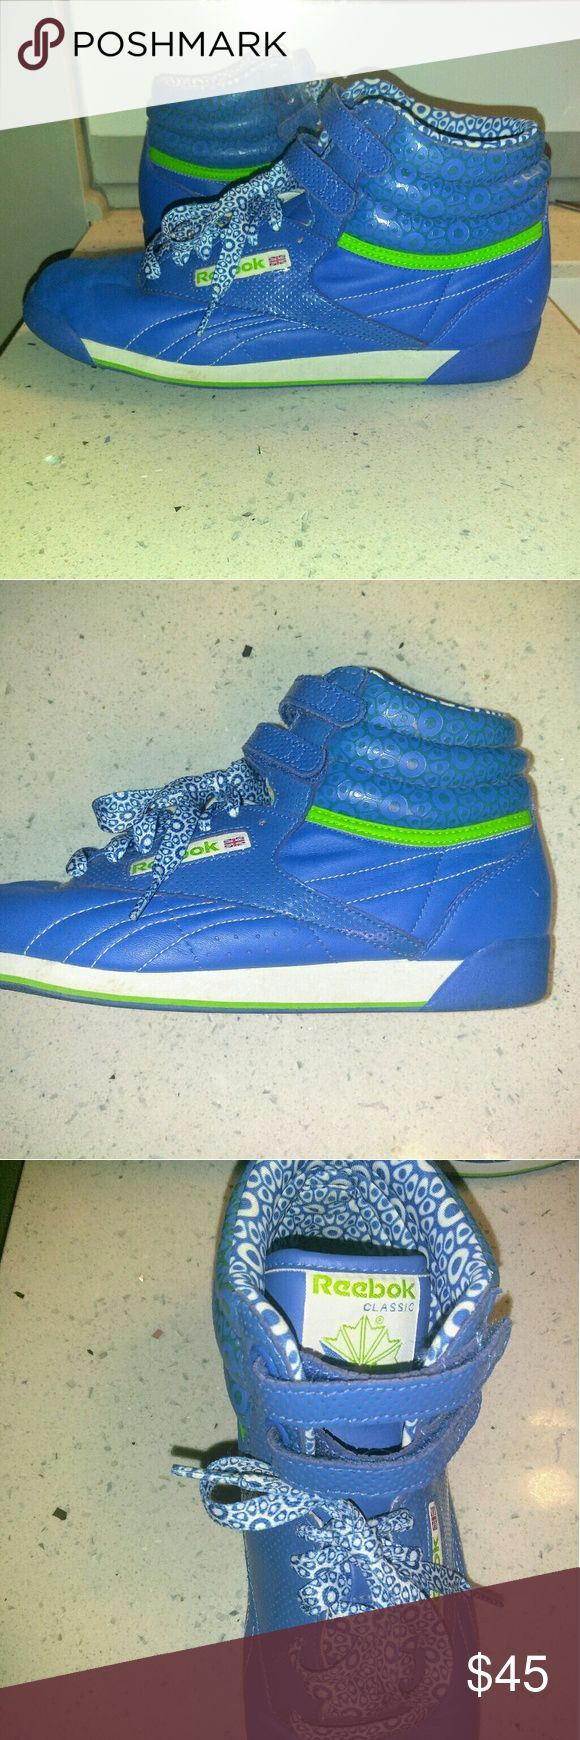 Reebok Classic High Tops Very unique and in excellent condition. Bright blue and lime green and white. Womens size 9.5 Reebok Shoes Sneakers